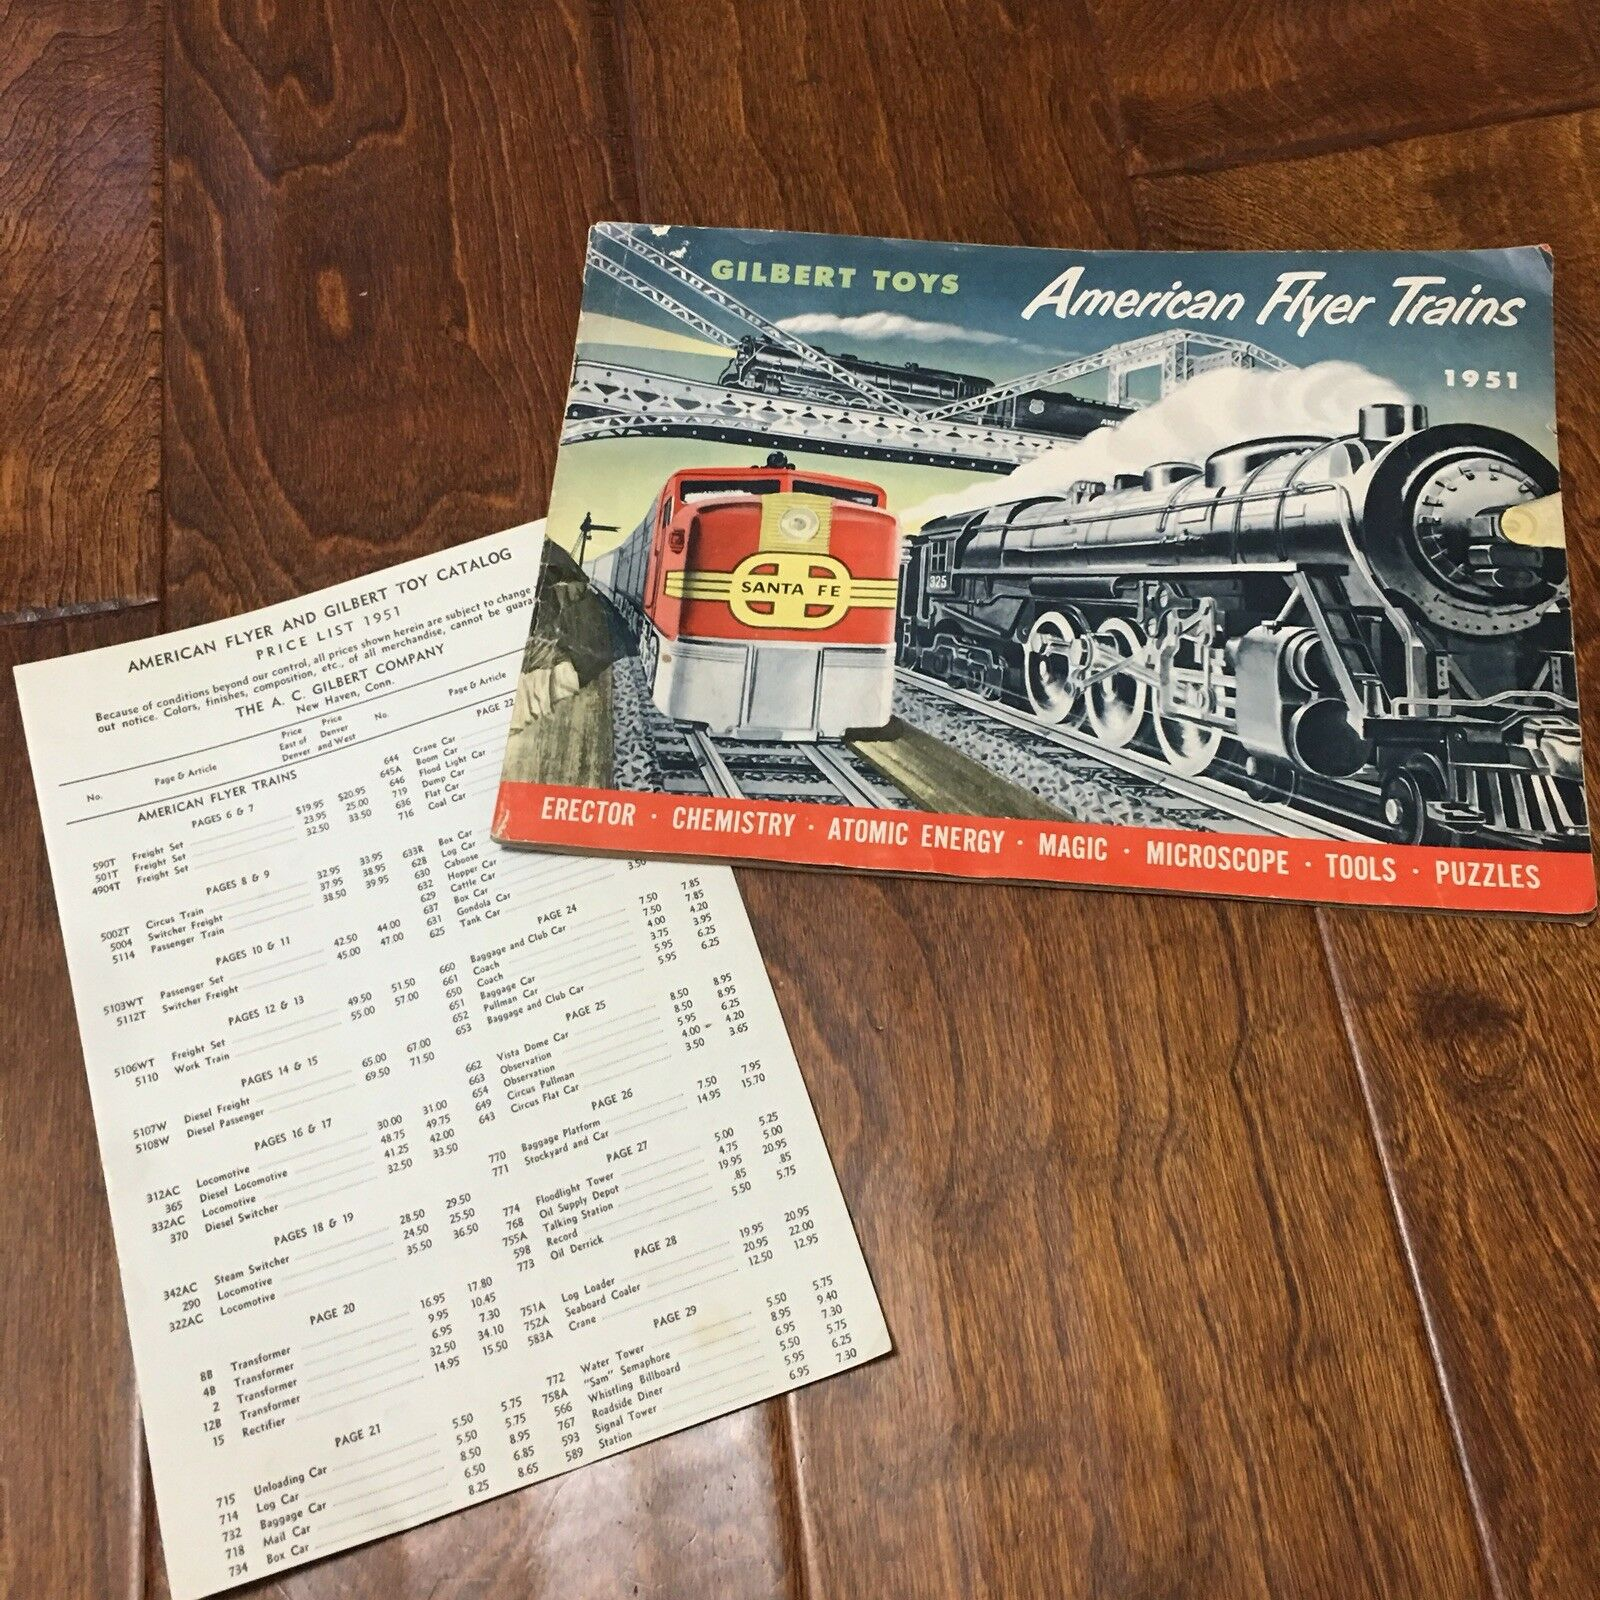 Vtg  Collectible 1951 American Flyer Gilbert Catalog Original Trains price list